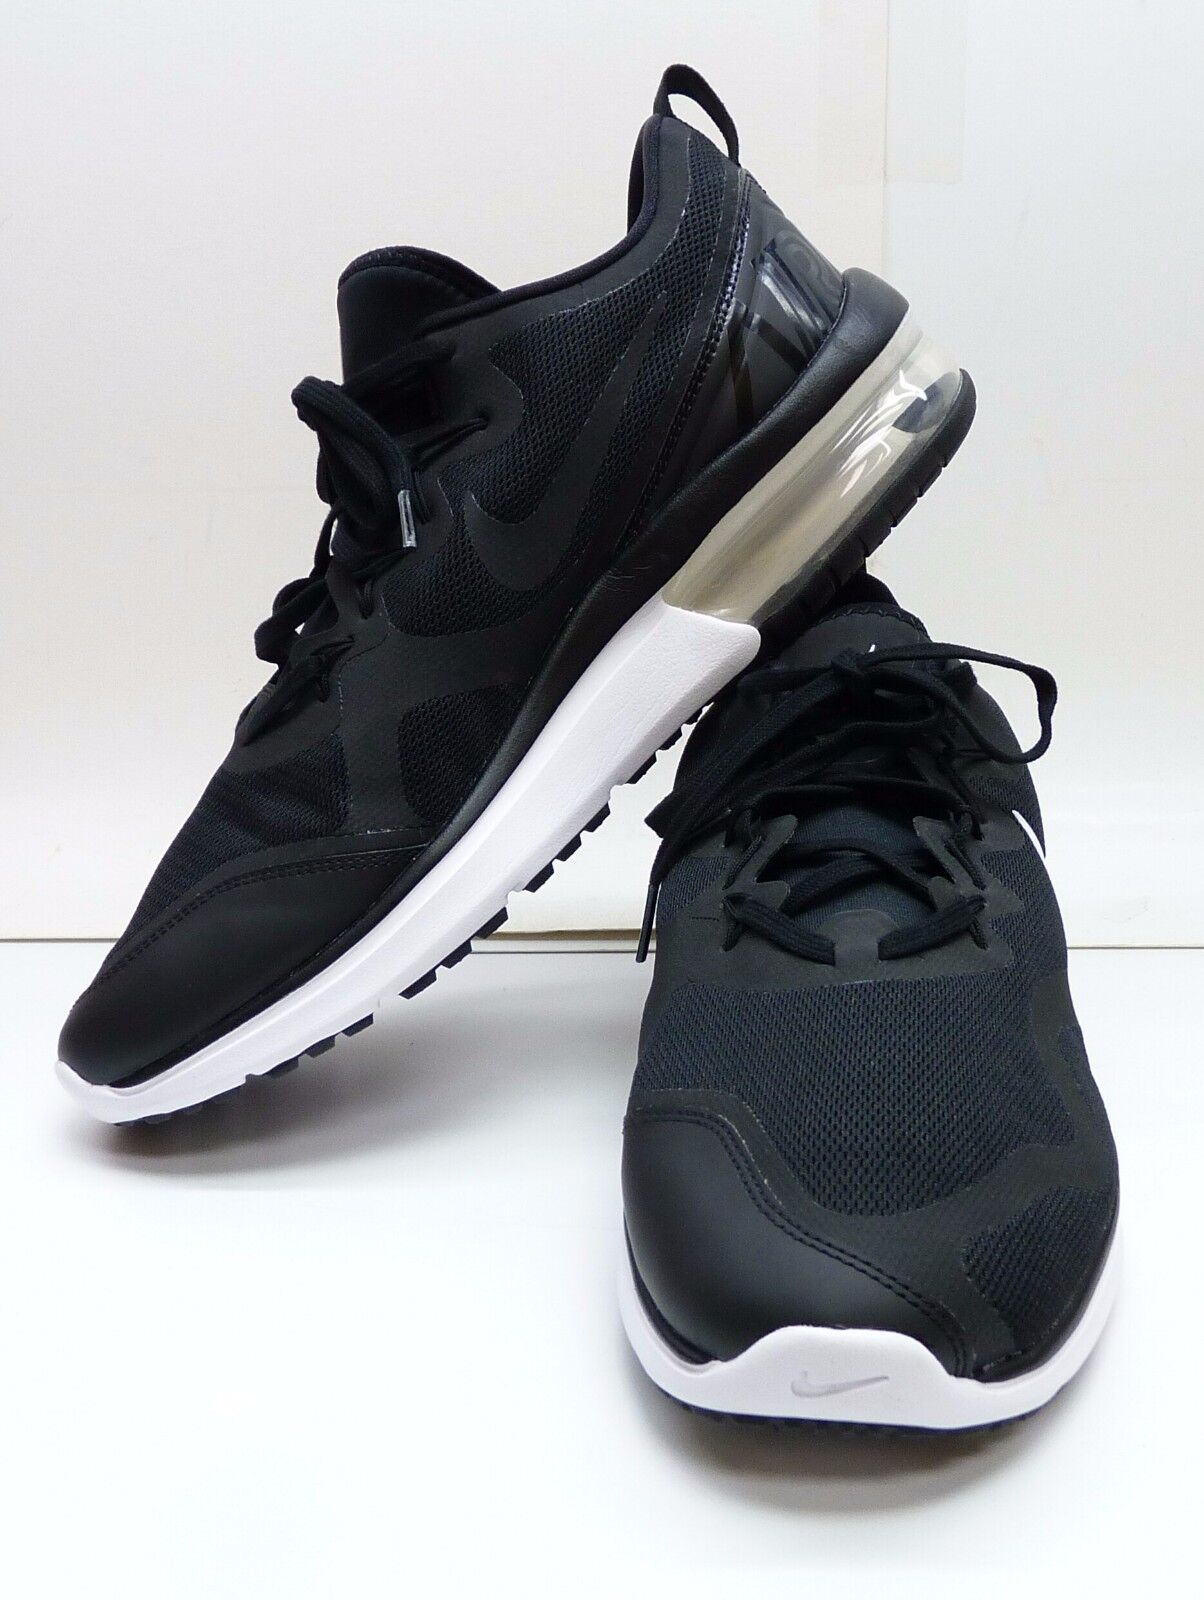 NIKE Air Max Fury Men's Running Shoes AA5739-001 Size 10.5/44.5